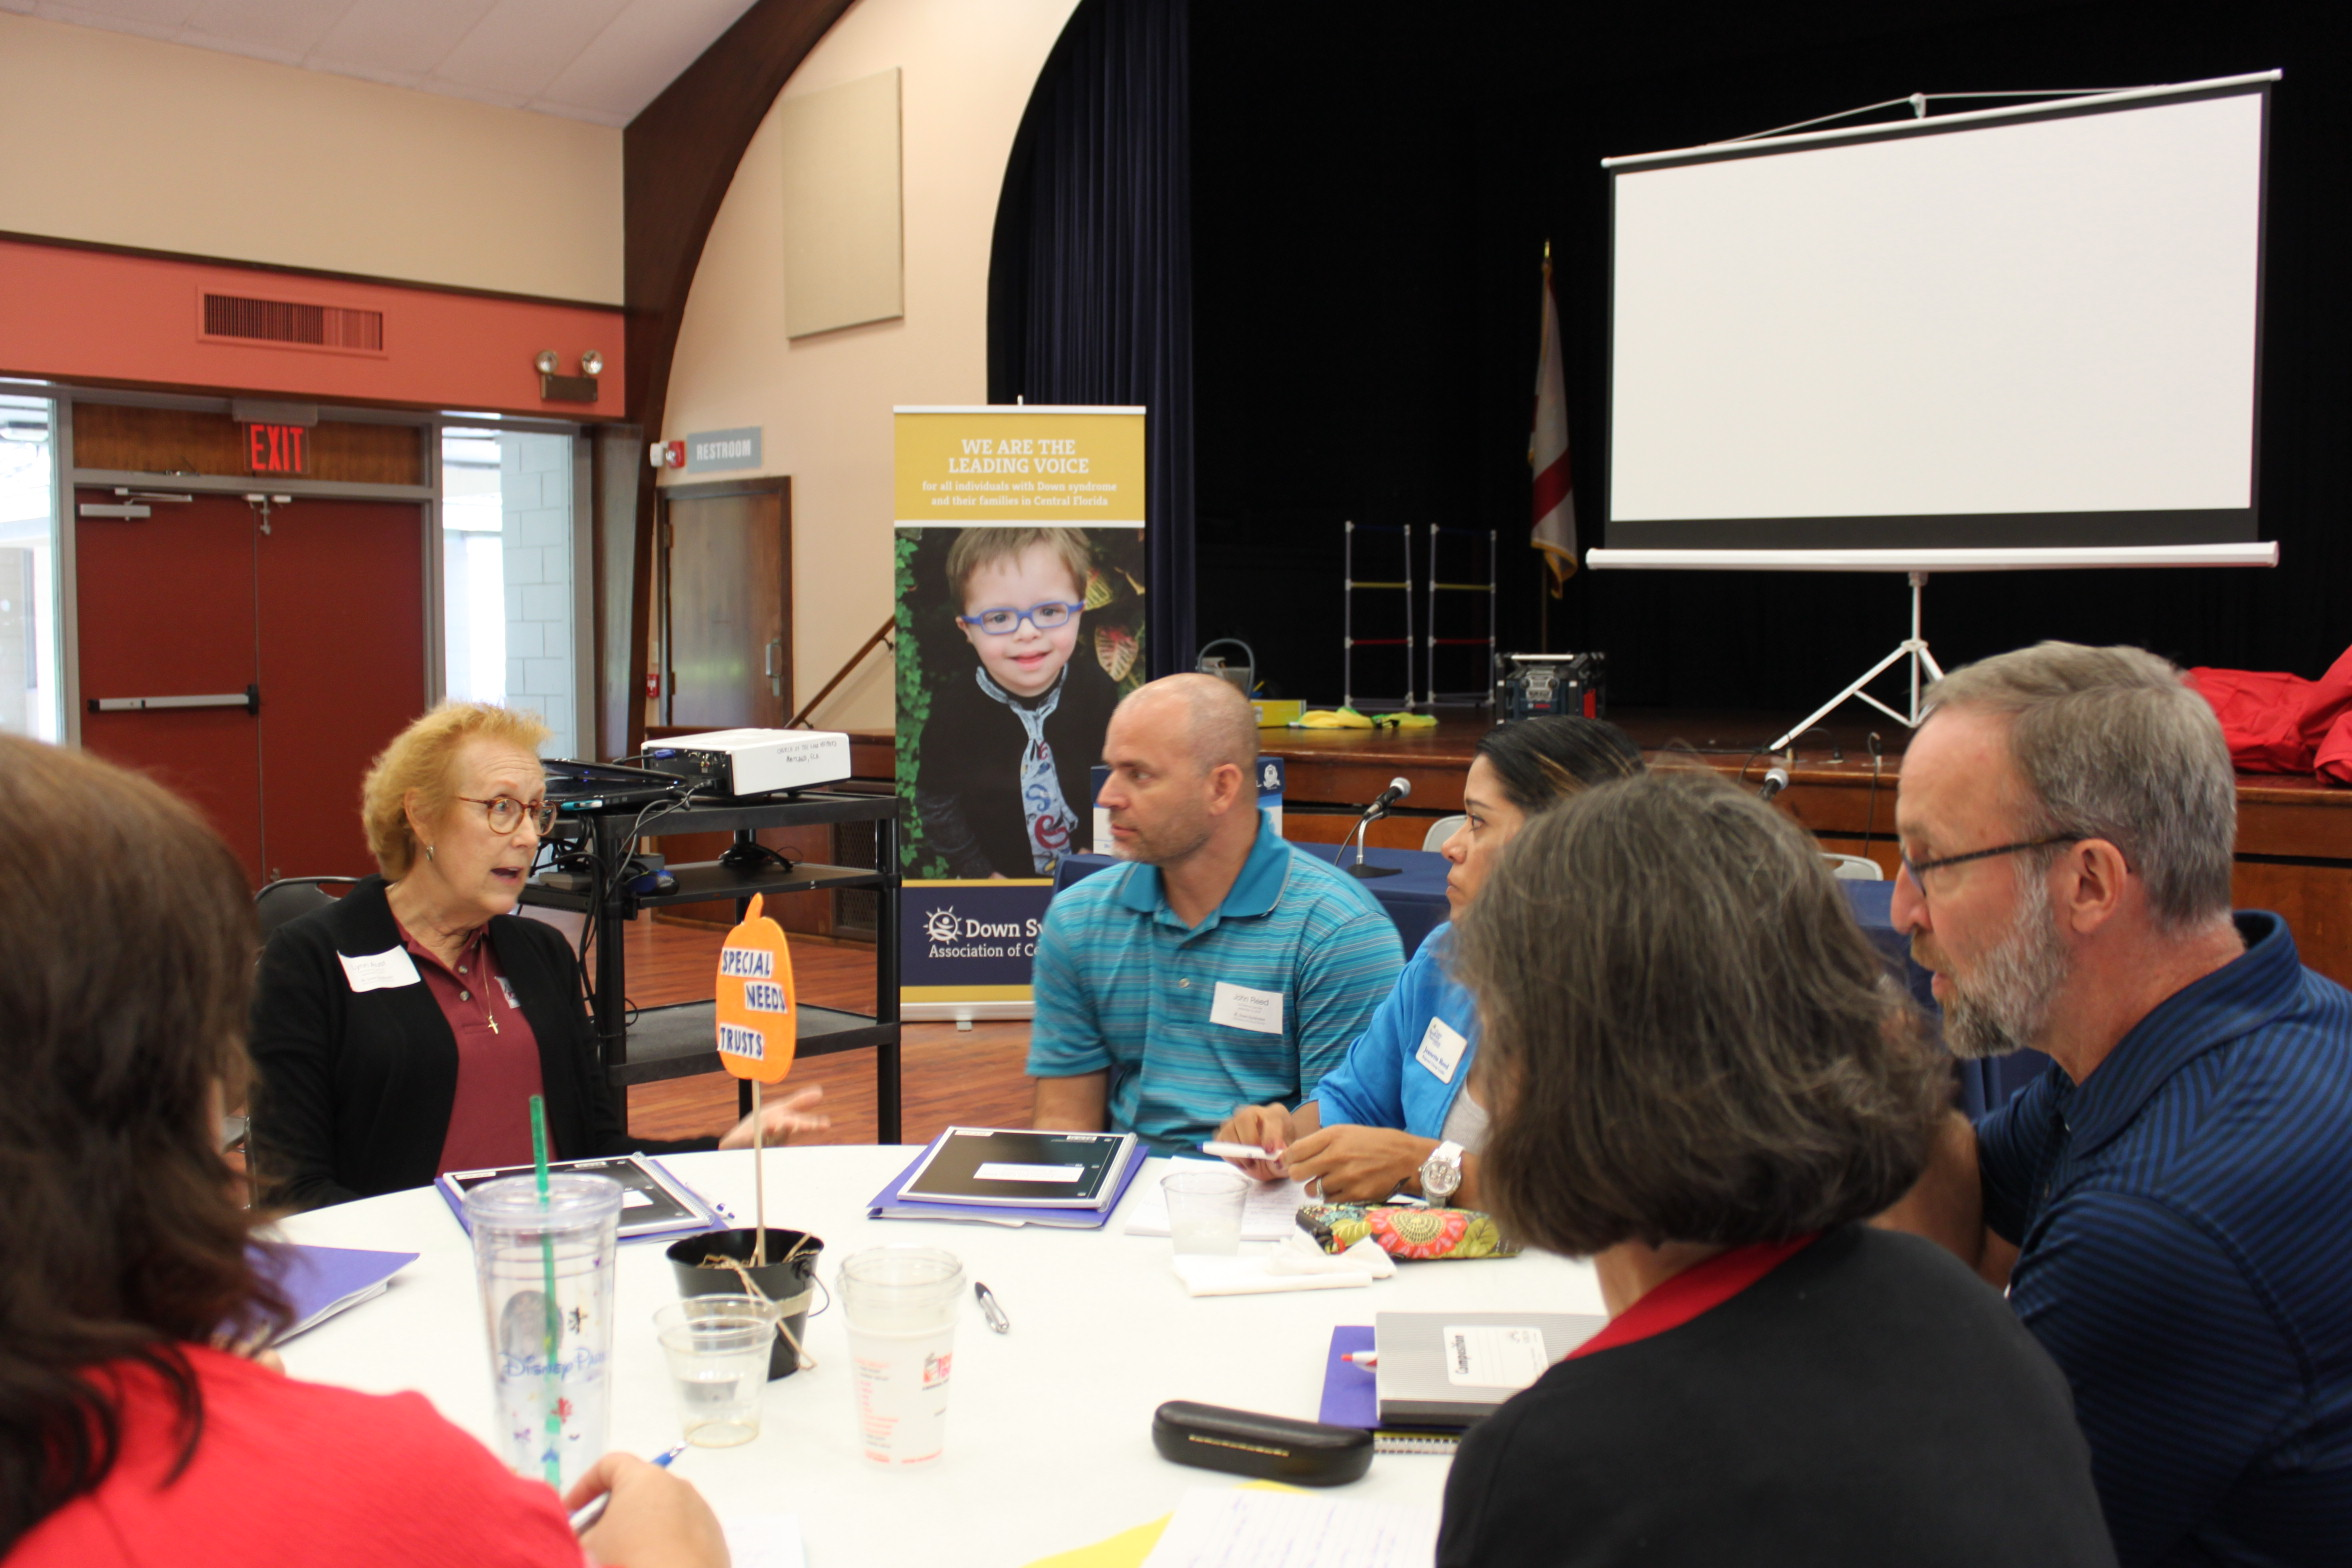 Attorney Lynn Aust answers questions about Special Needs Trusts at one of the roundtable discussion sessions.